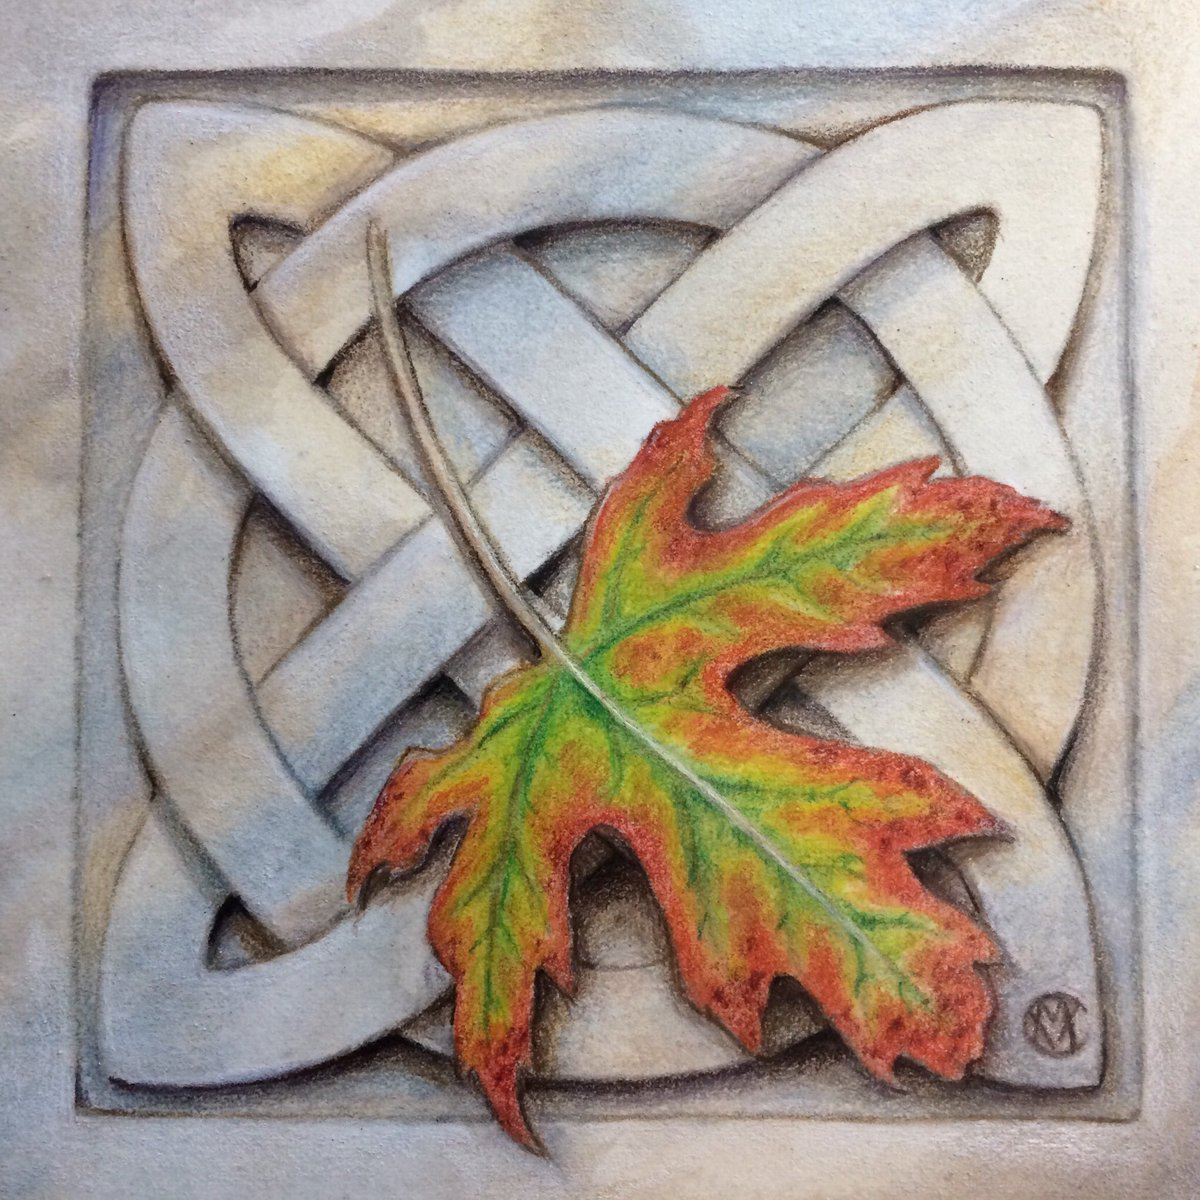 Finishing up this lovely little #CelticKnot to bring into @FaeNature later this week. I'm so excited to say that some of my art, prints, and cards will soon be available there! #art #leaf #maple #autumn #nature #celtic #ink #coloredpencil #watercolor #artist #stone #marble #carve